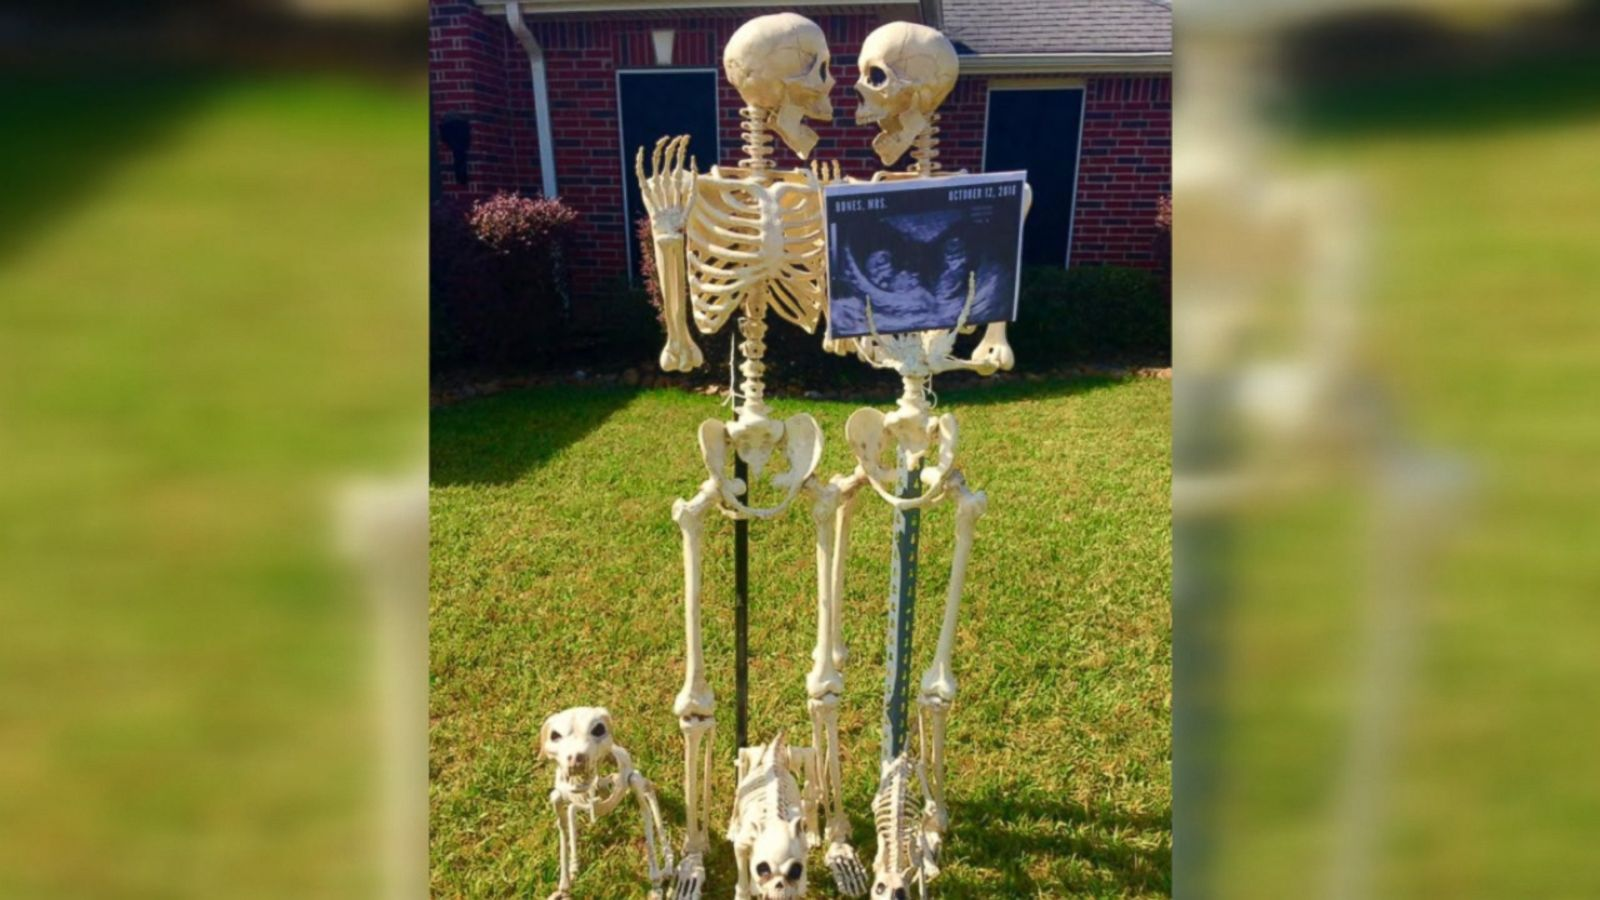 Amy B. Moses of Lumberton, Texas poses her skeleton decorations into various scenes each Halloween season.